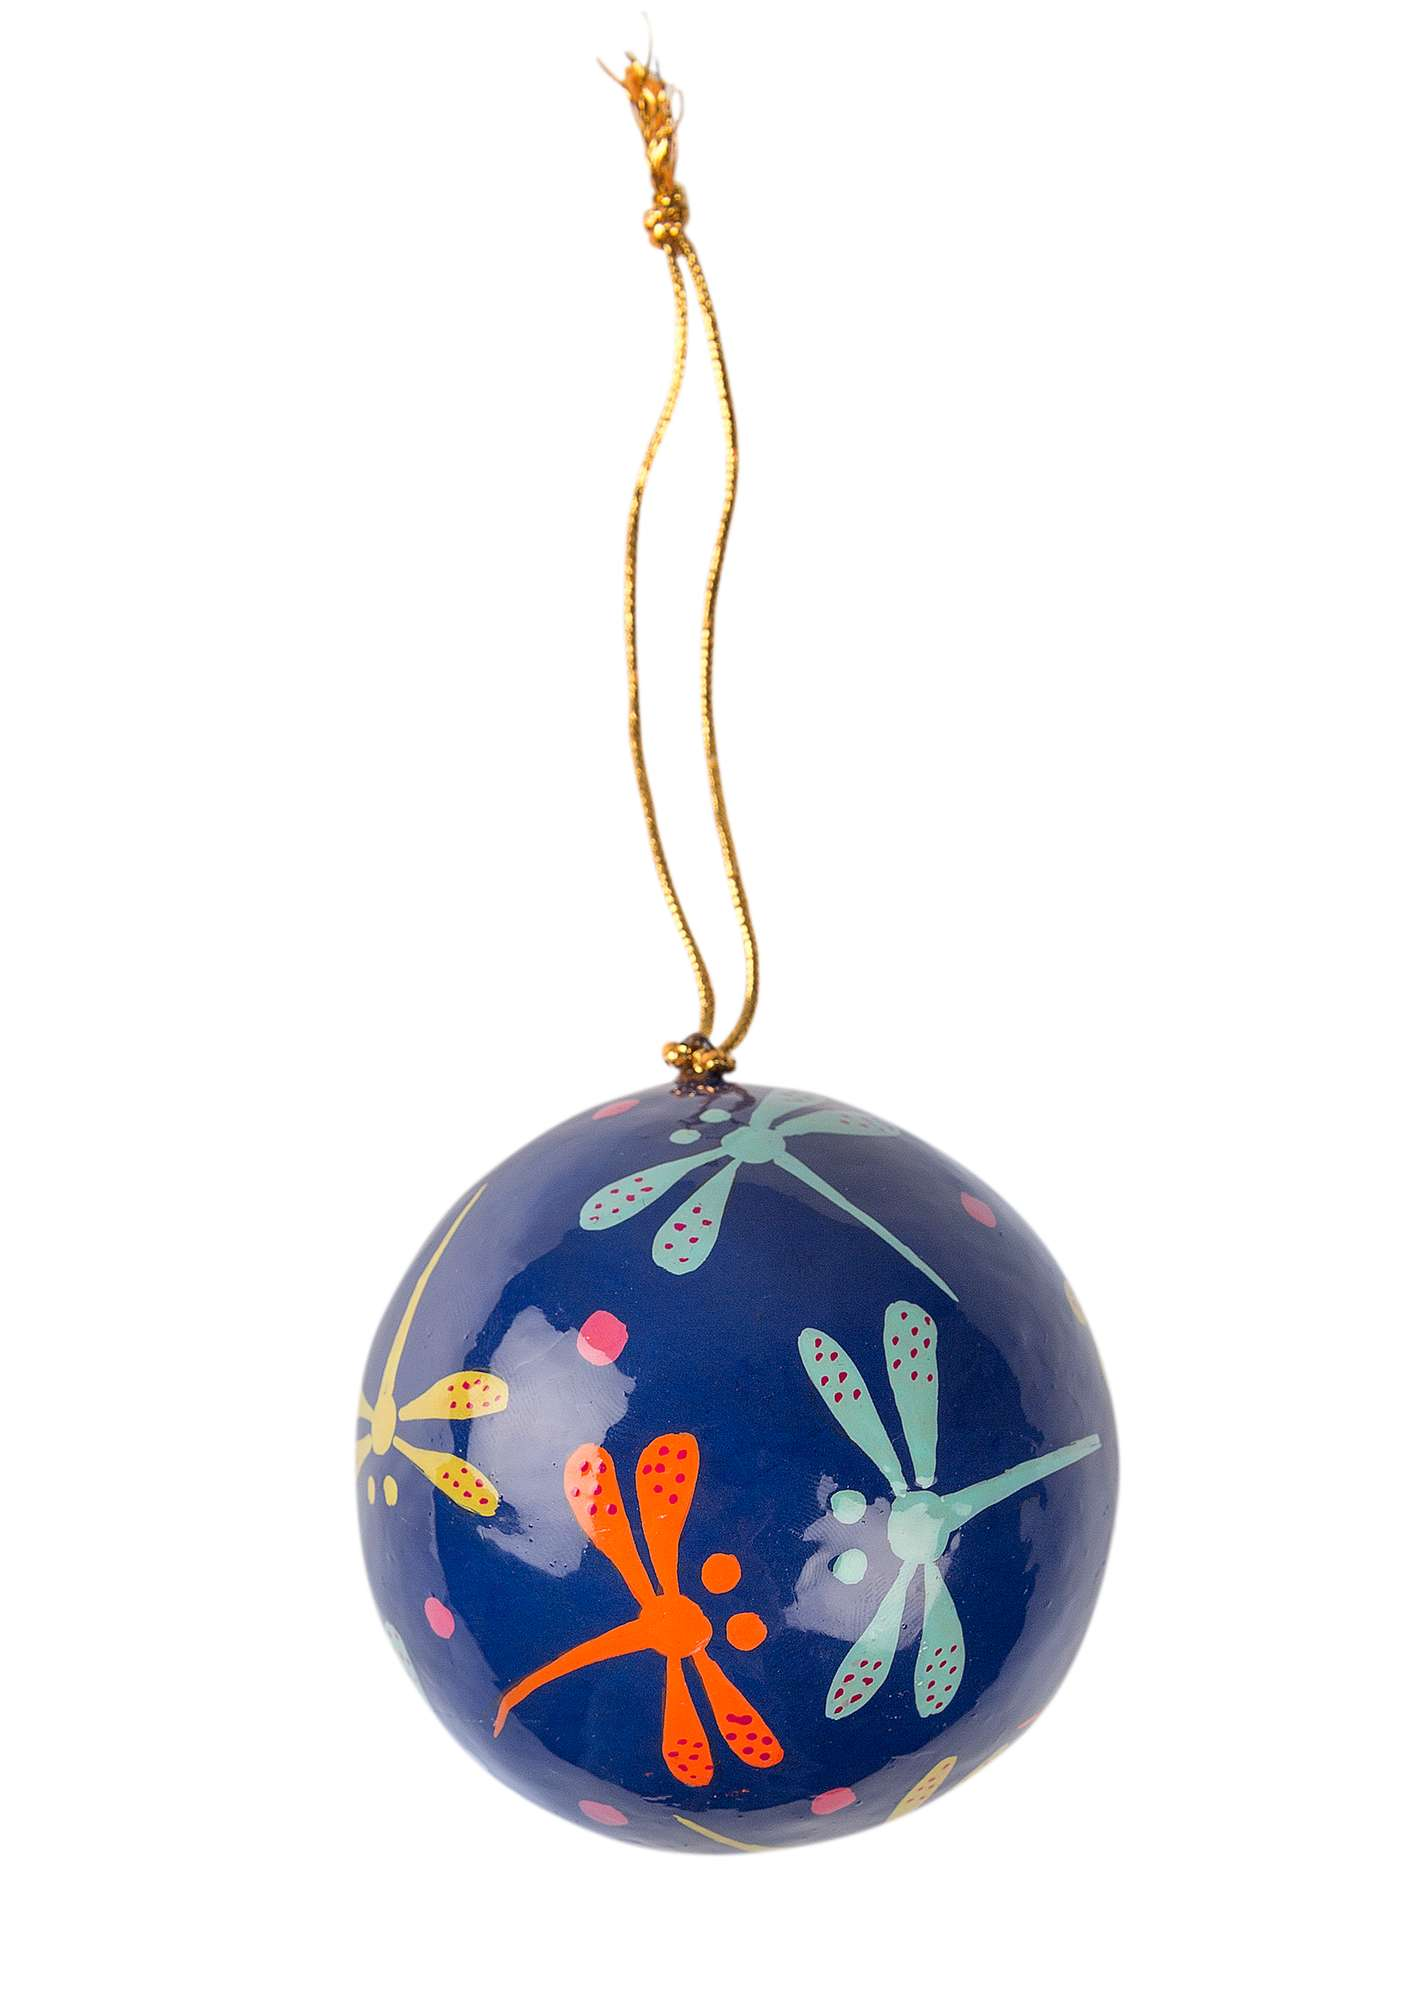 Papier-mâché Christmas-tree baubles porcelain blue